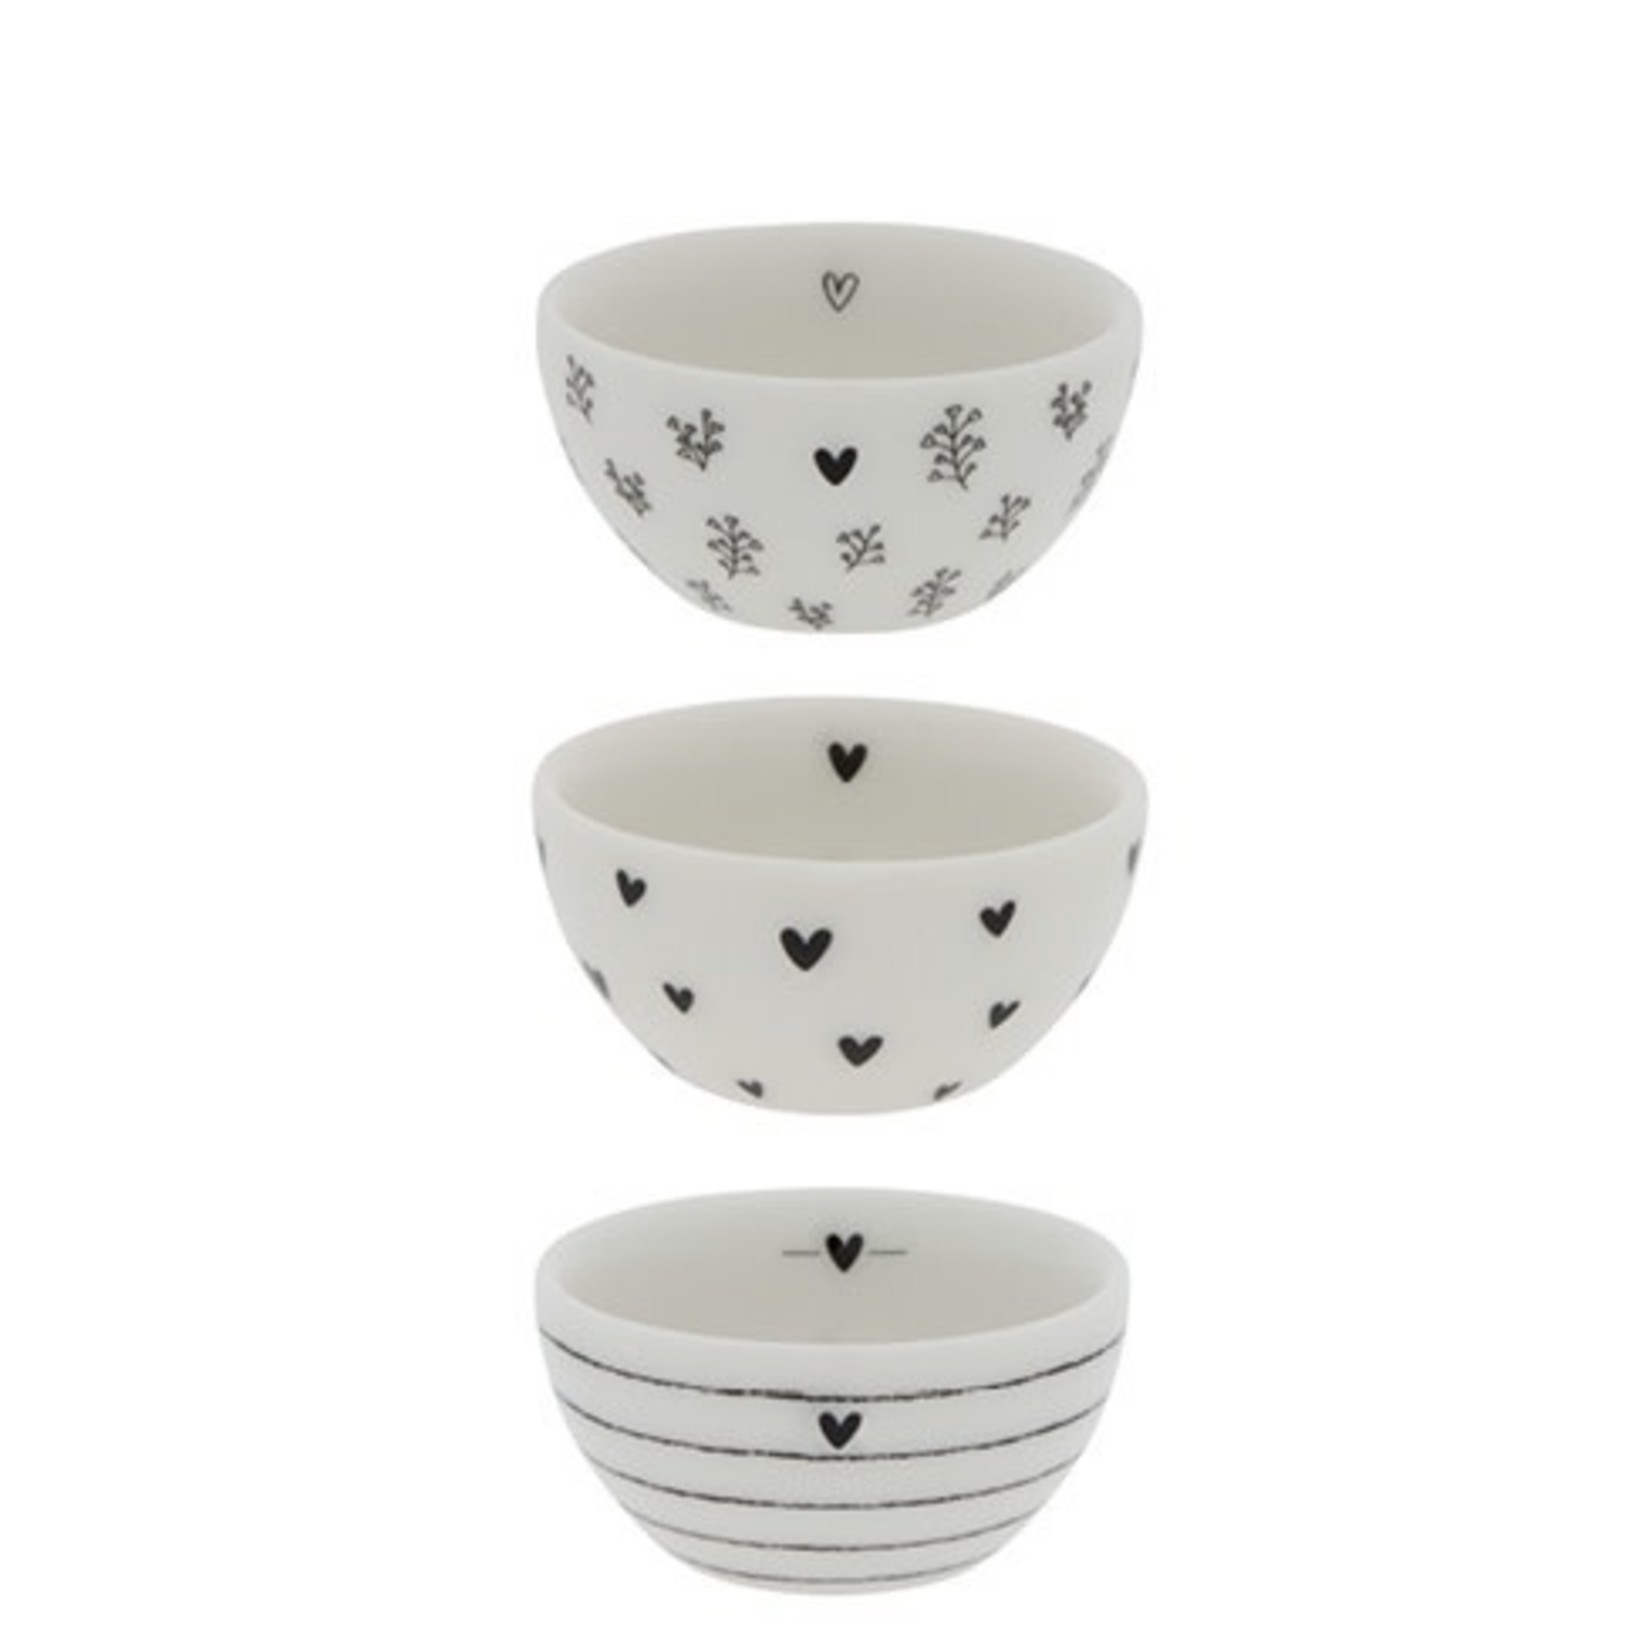 Bastion Collections Bowl XS Flowers white black 6x3 cm